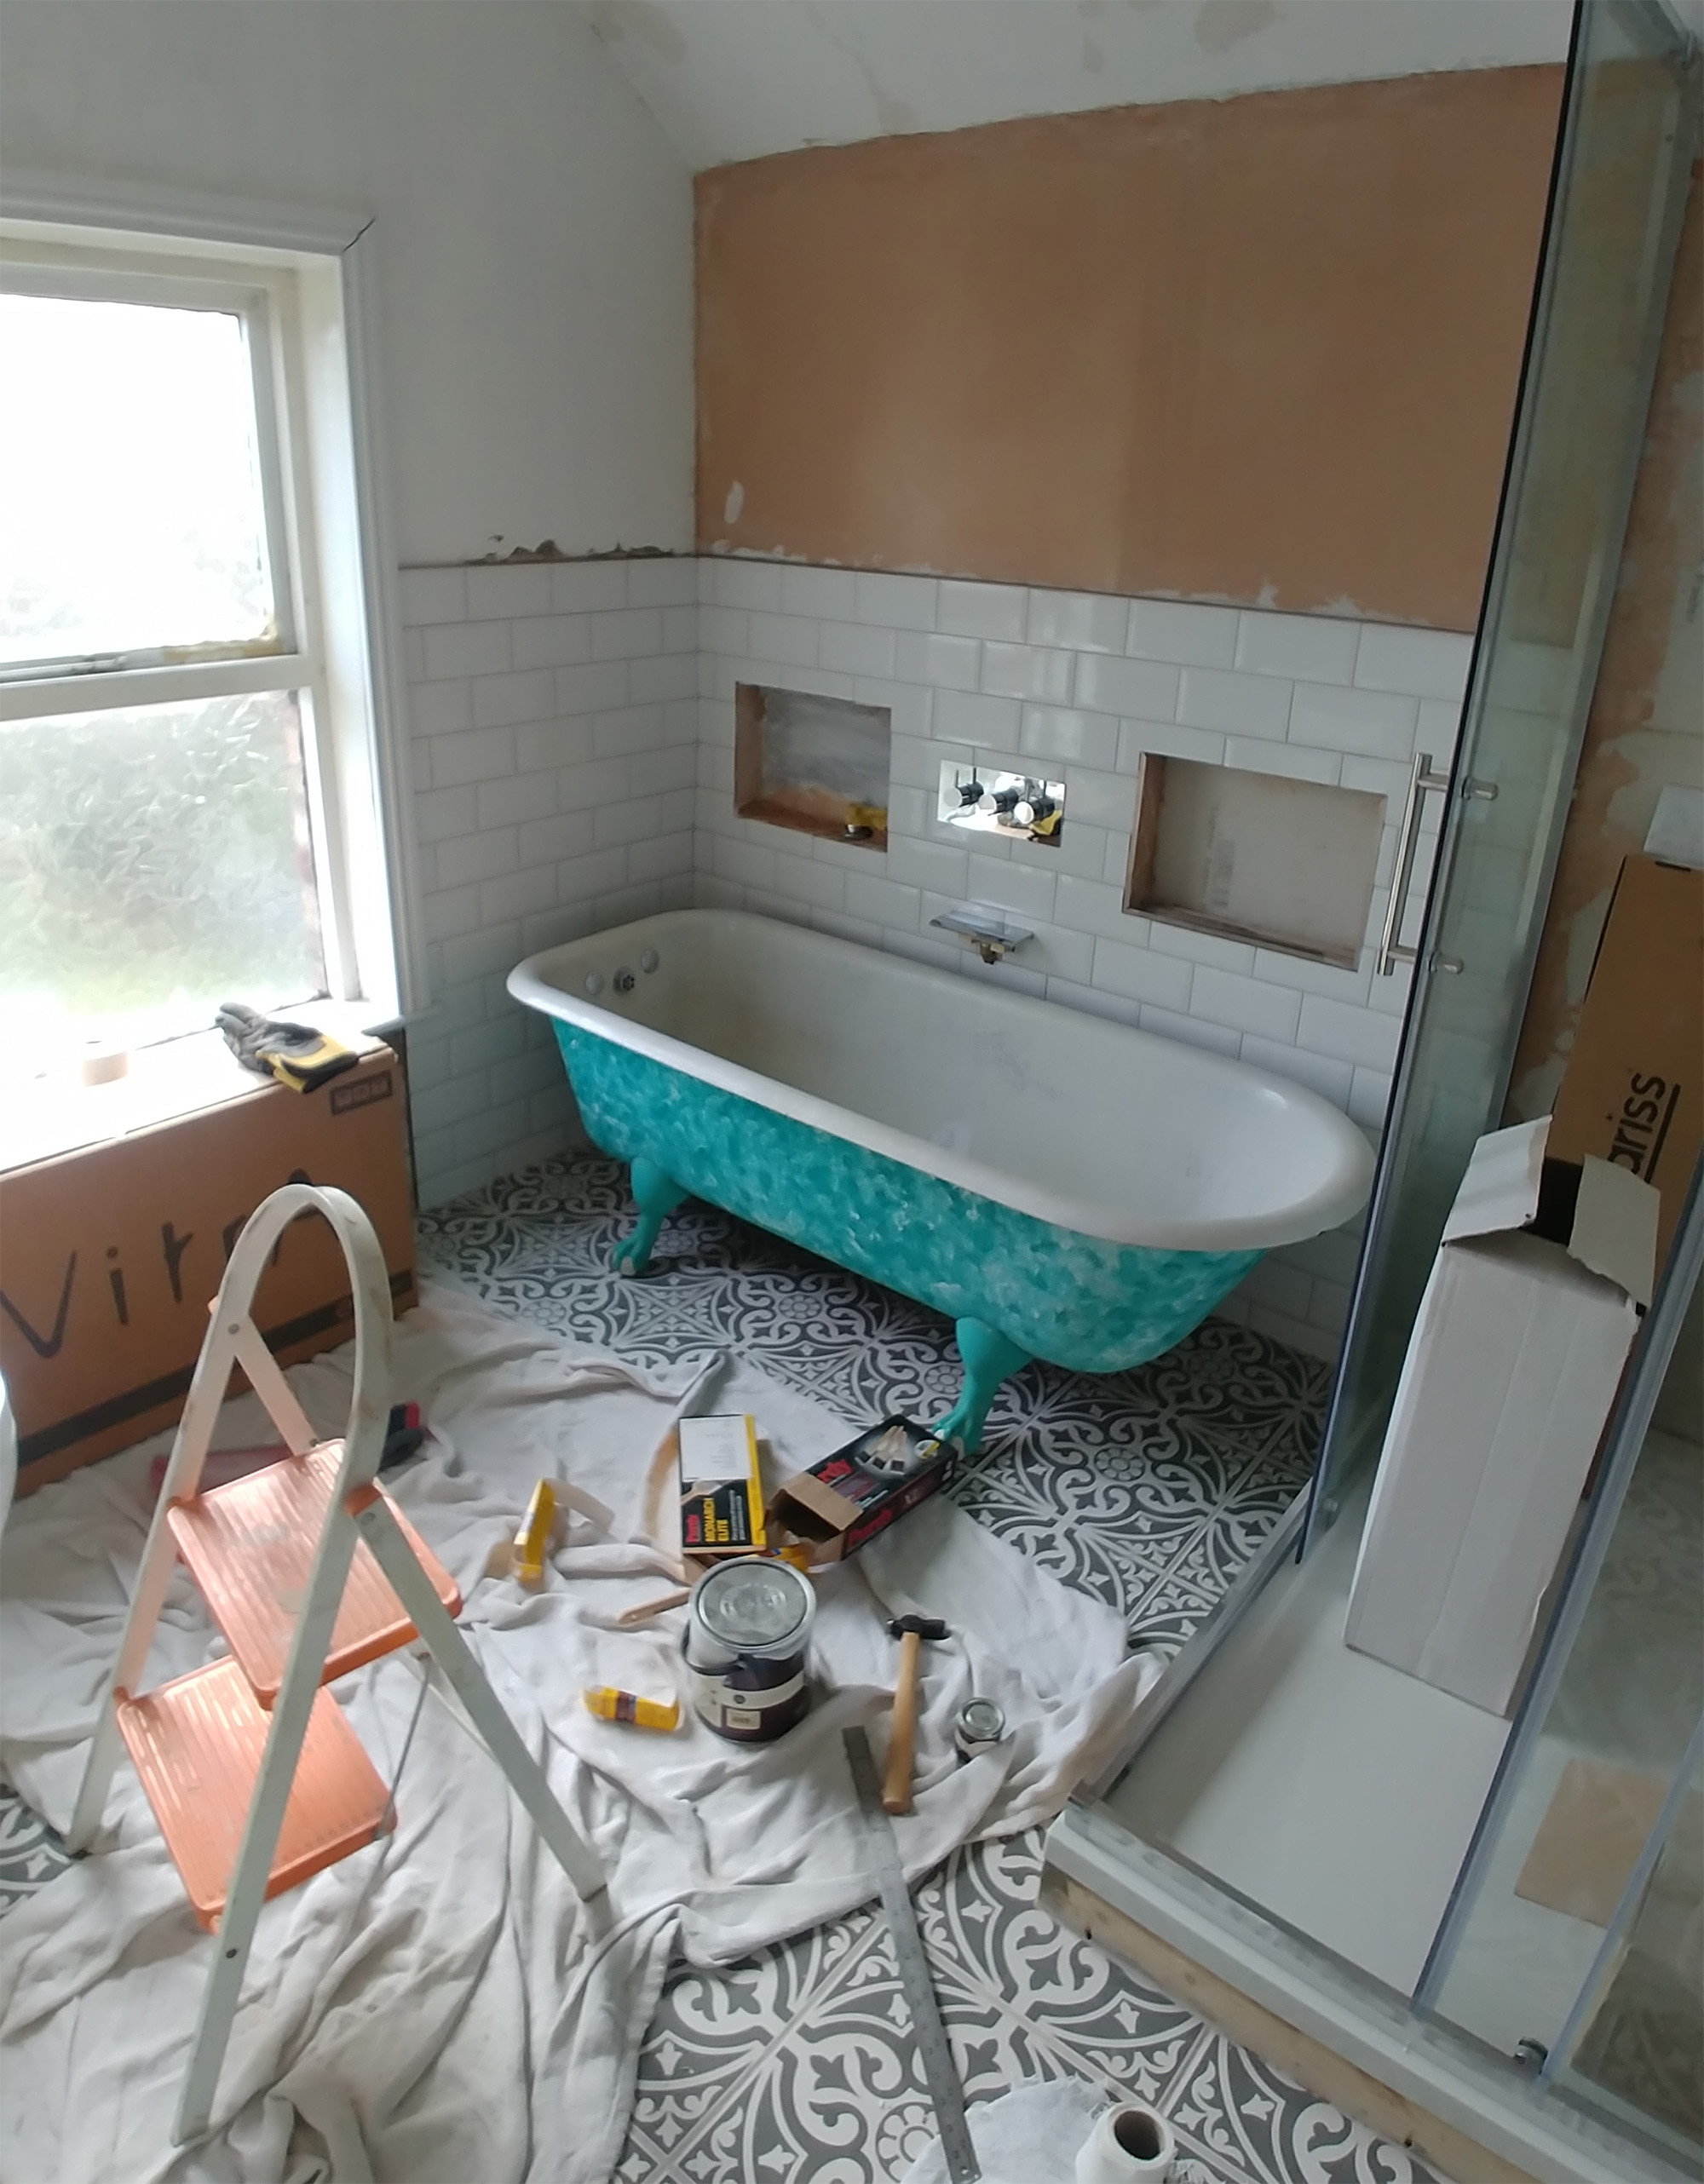 Floor, wall tiles and shower surround done. Shower tiles, sink, bath and decorating yet to do.